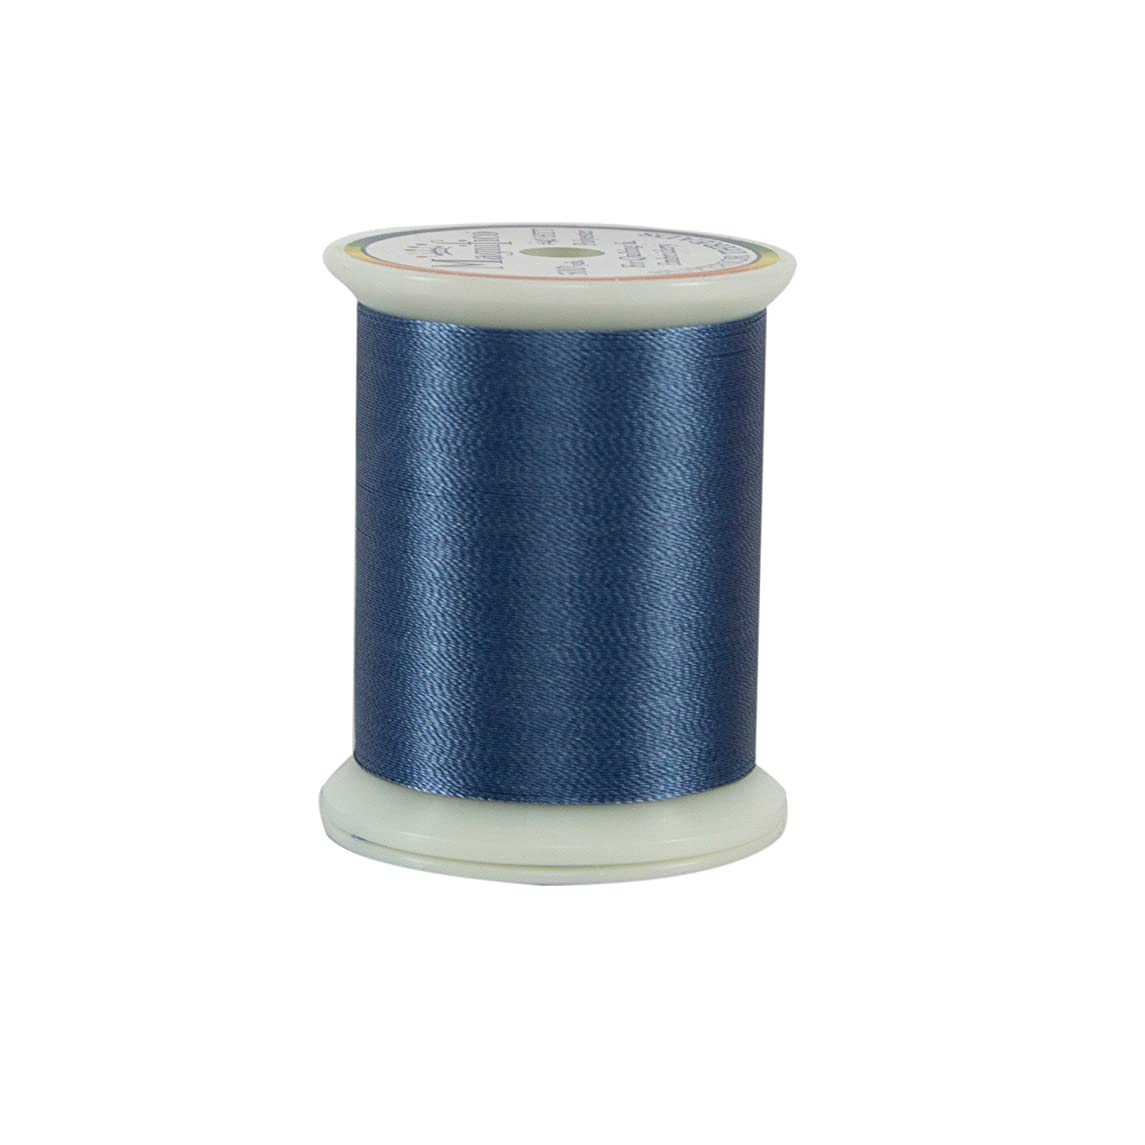 Superior Threads 10501-2151 Magnifico Chambray 40W Polyester Thread, 500 yd